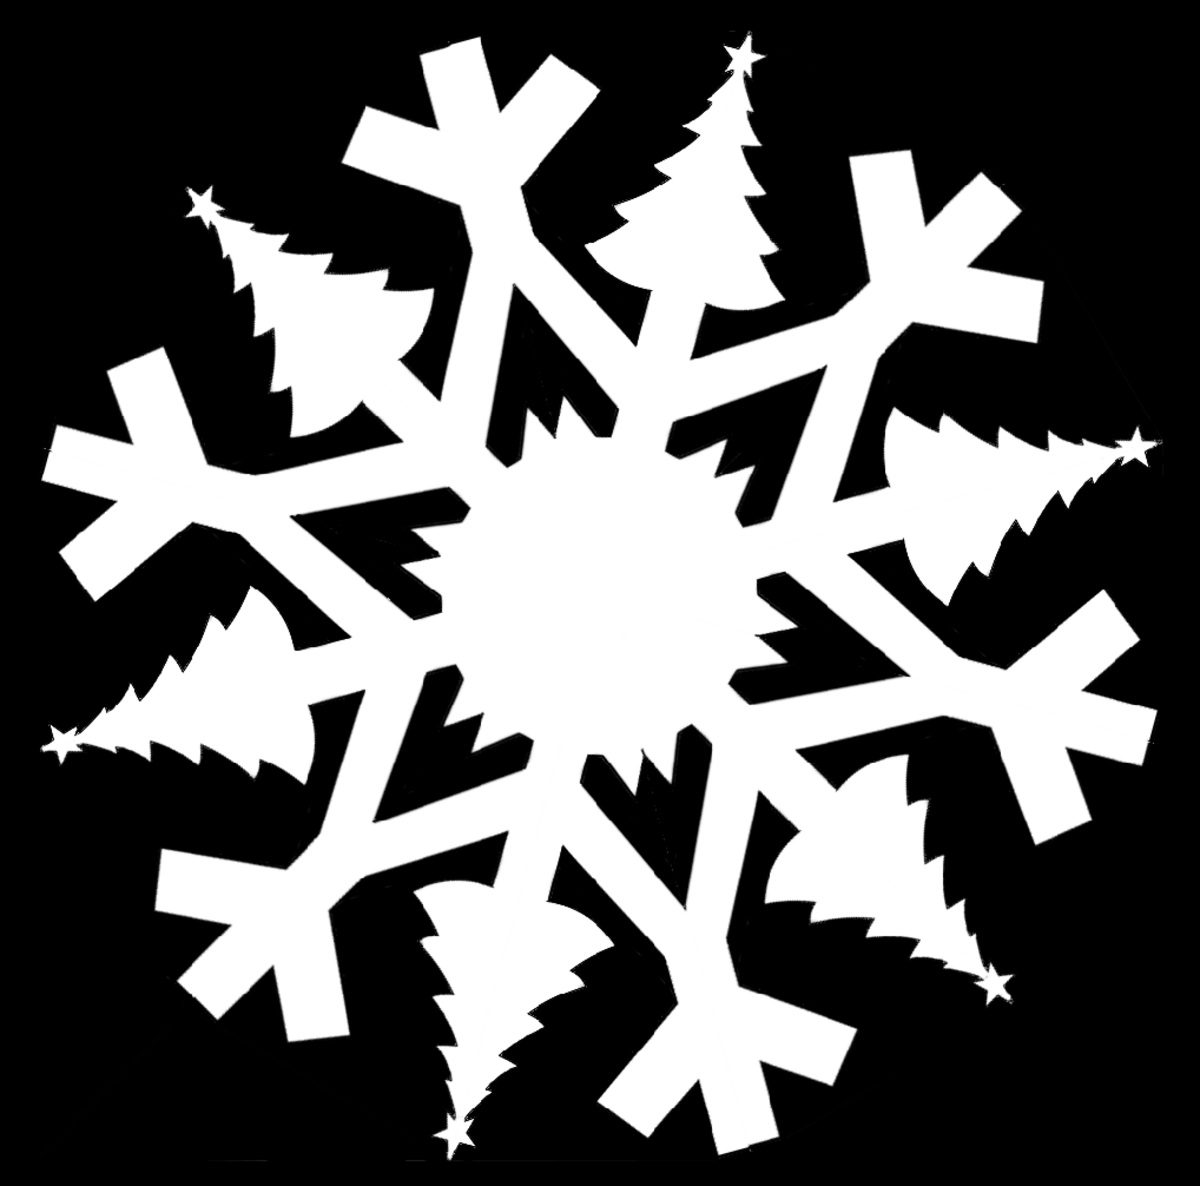 It's just a graphic of Adaptable Snowflake Patterns Printable